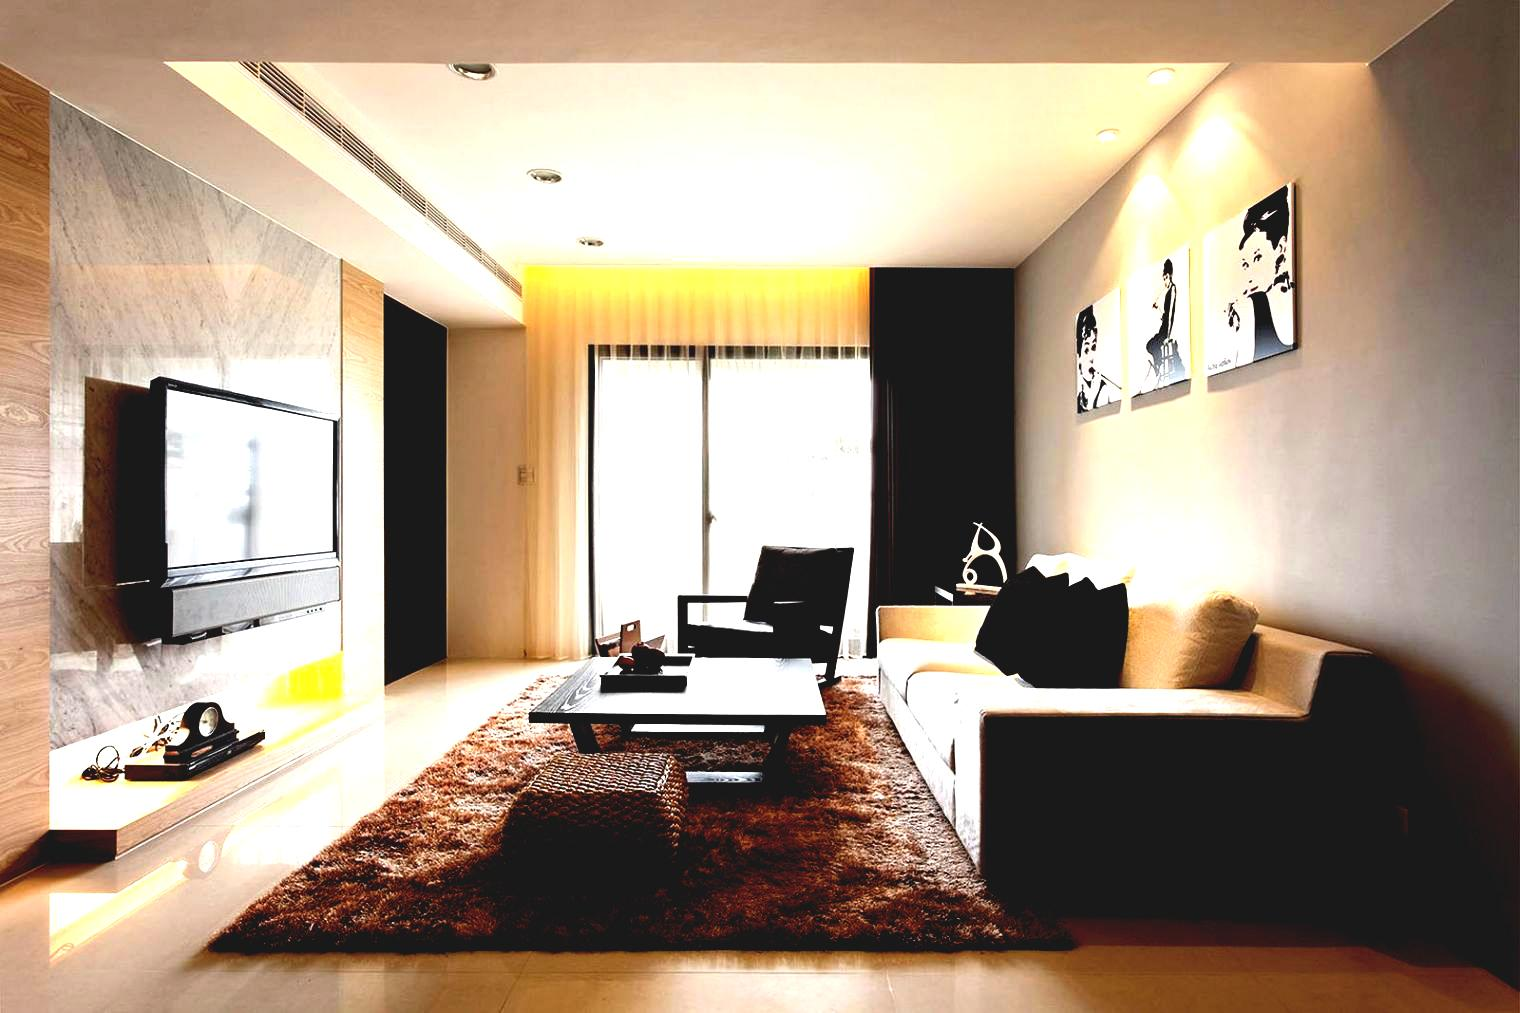 living room ideas on a small budget old fashioned designs how to decorate the house in thebuzzqueen